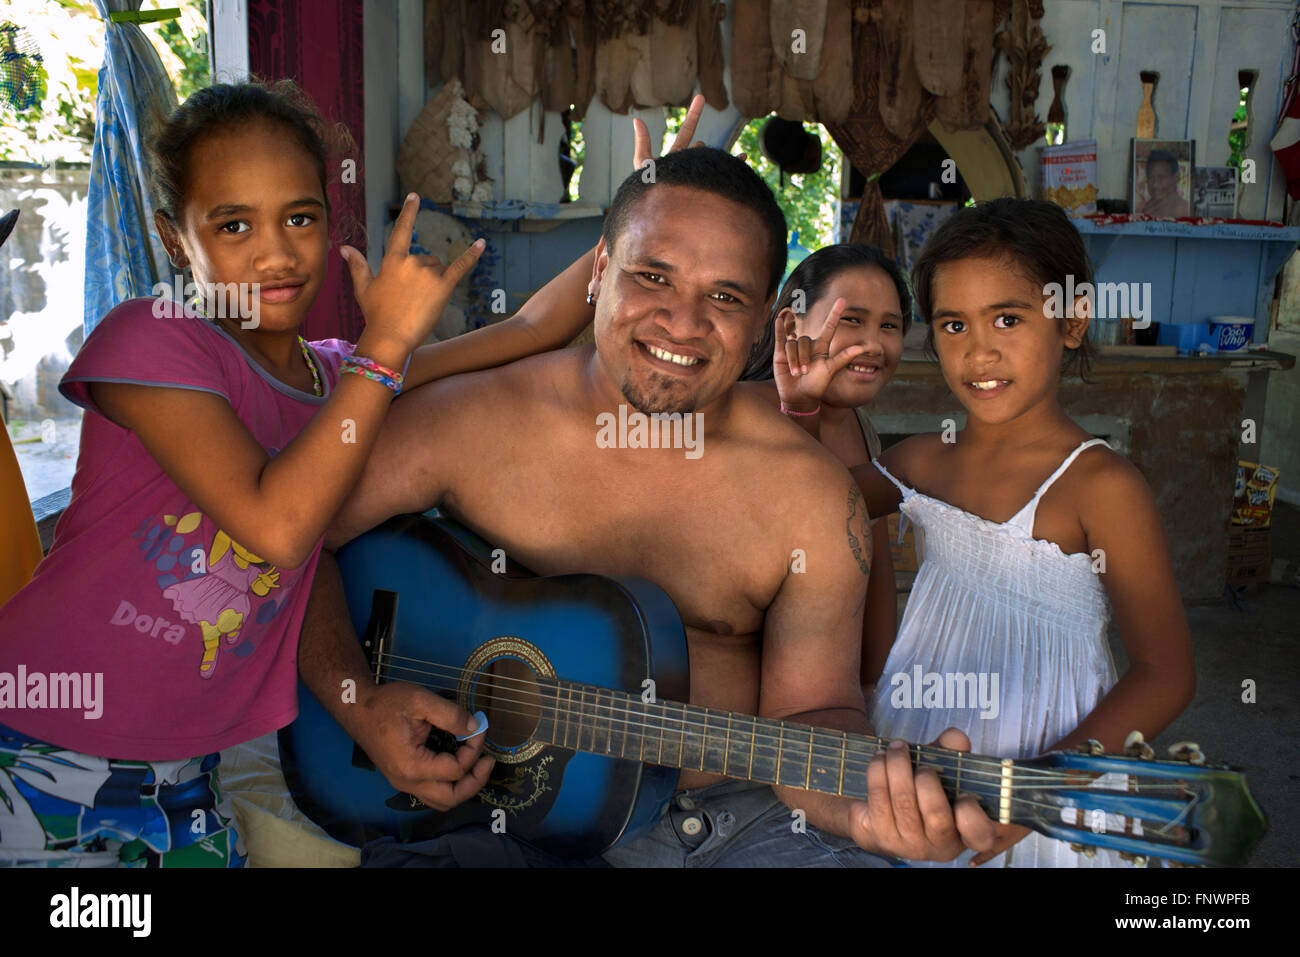 Inside of a traditional house in Rangiroa, Tuamotus Islands, French Polynesia, South Pacific. Man playing guitar - Stock Image